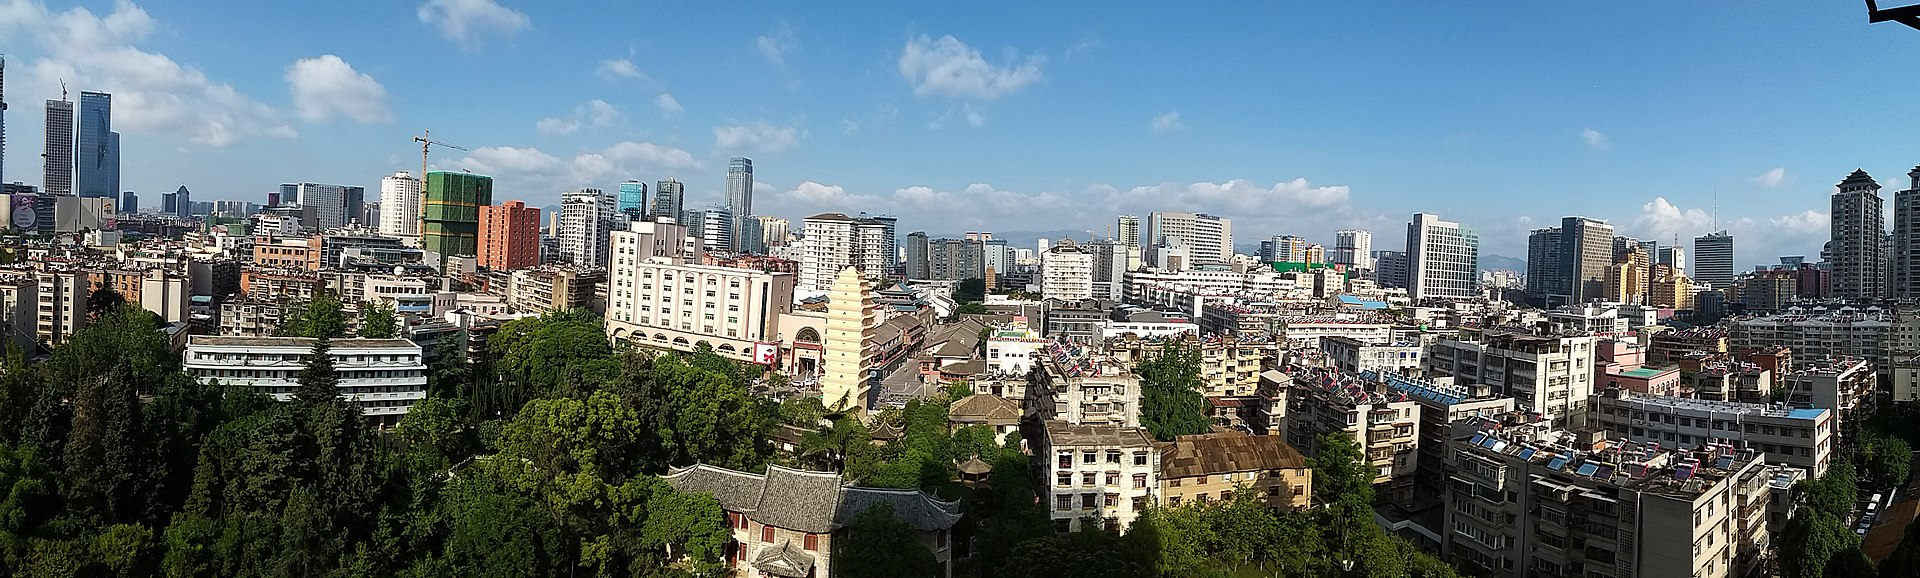 Kunming Downtown.jpg